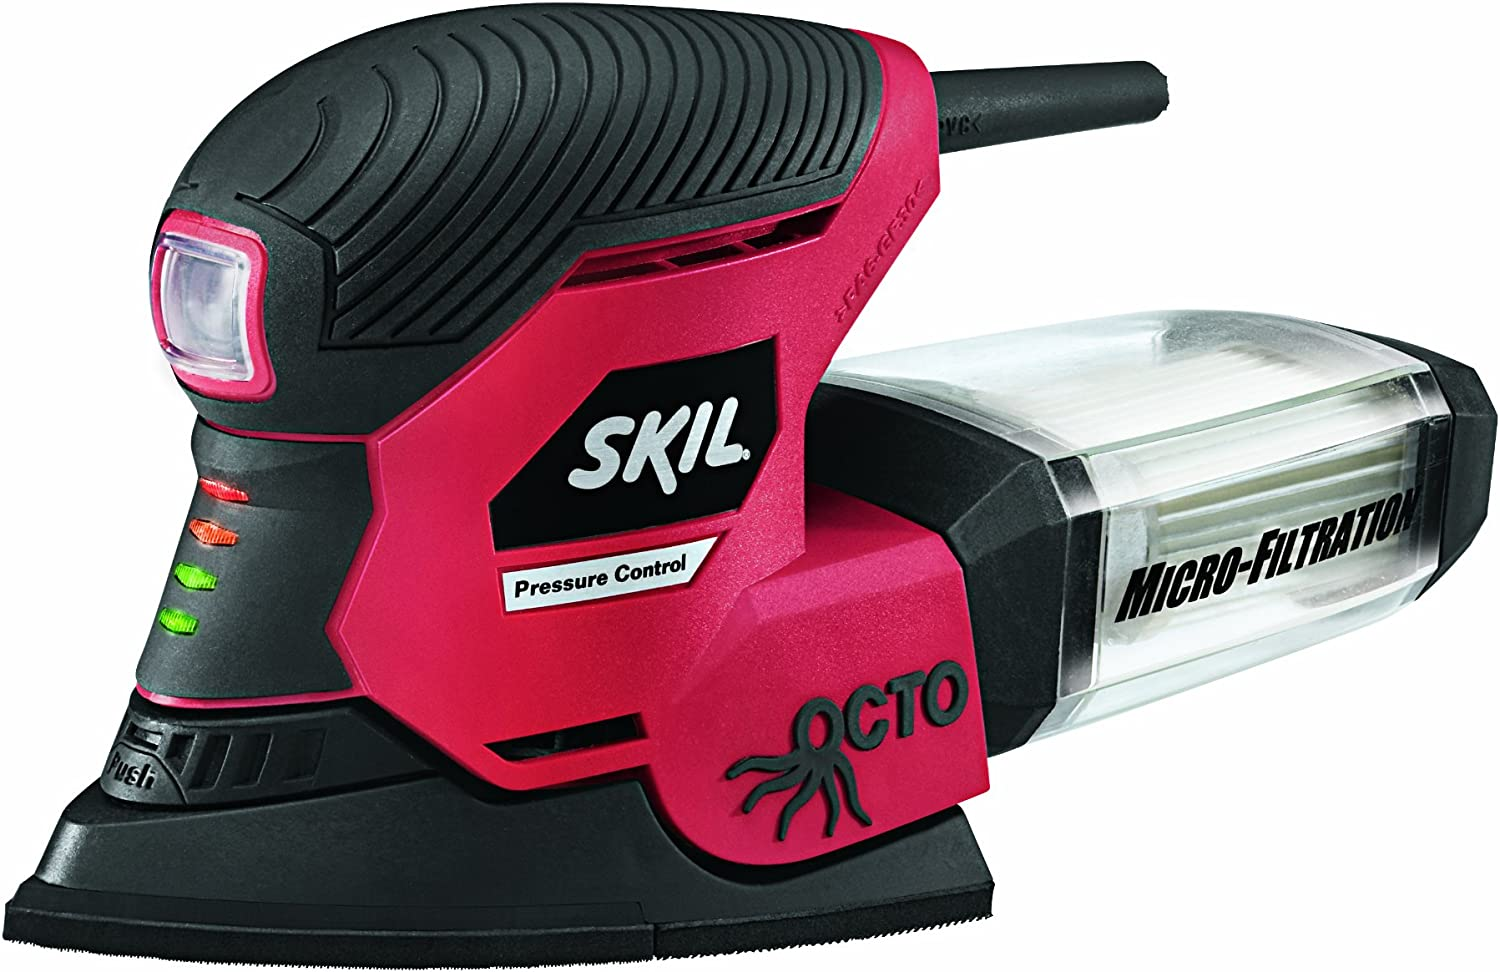 Skil SK7302-02 featured image